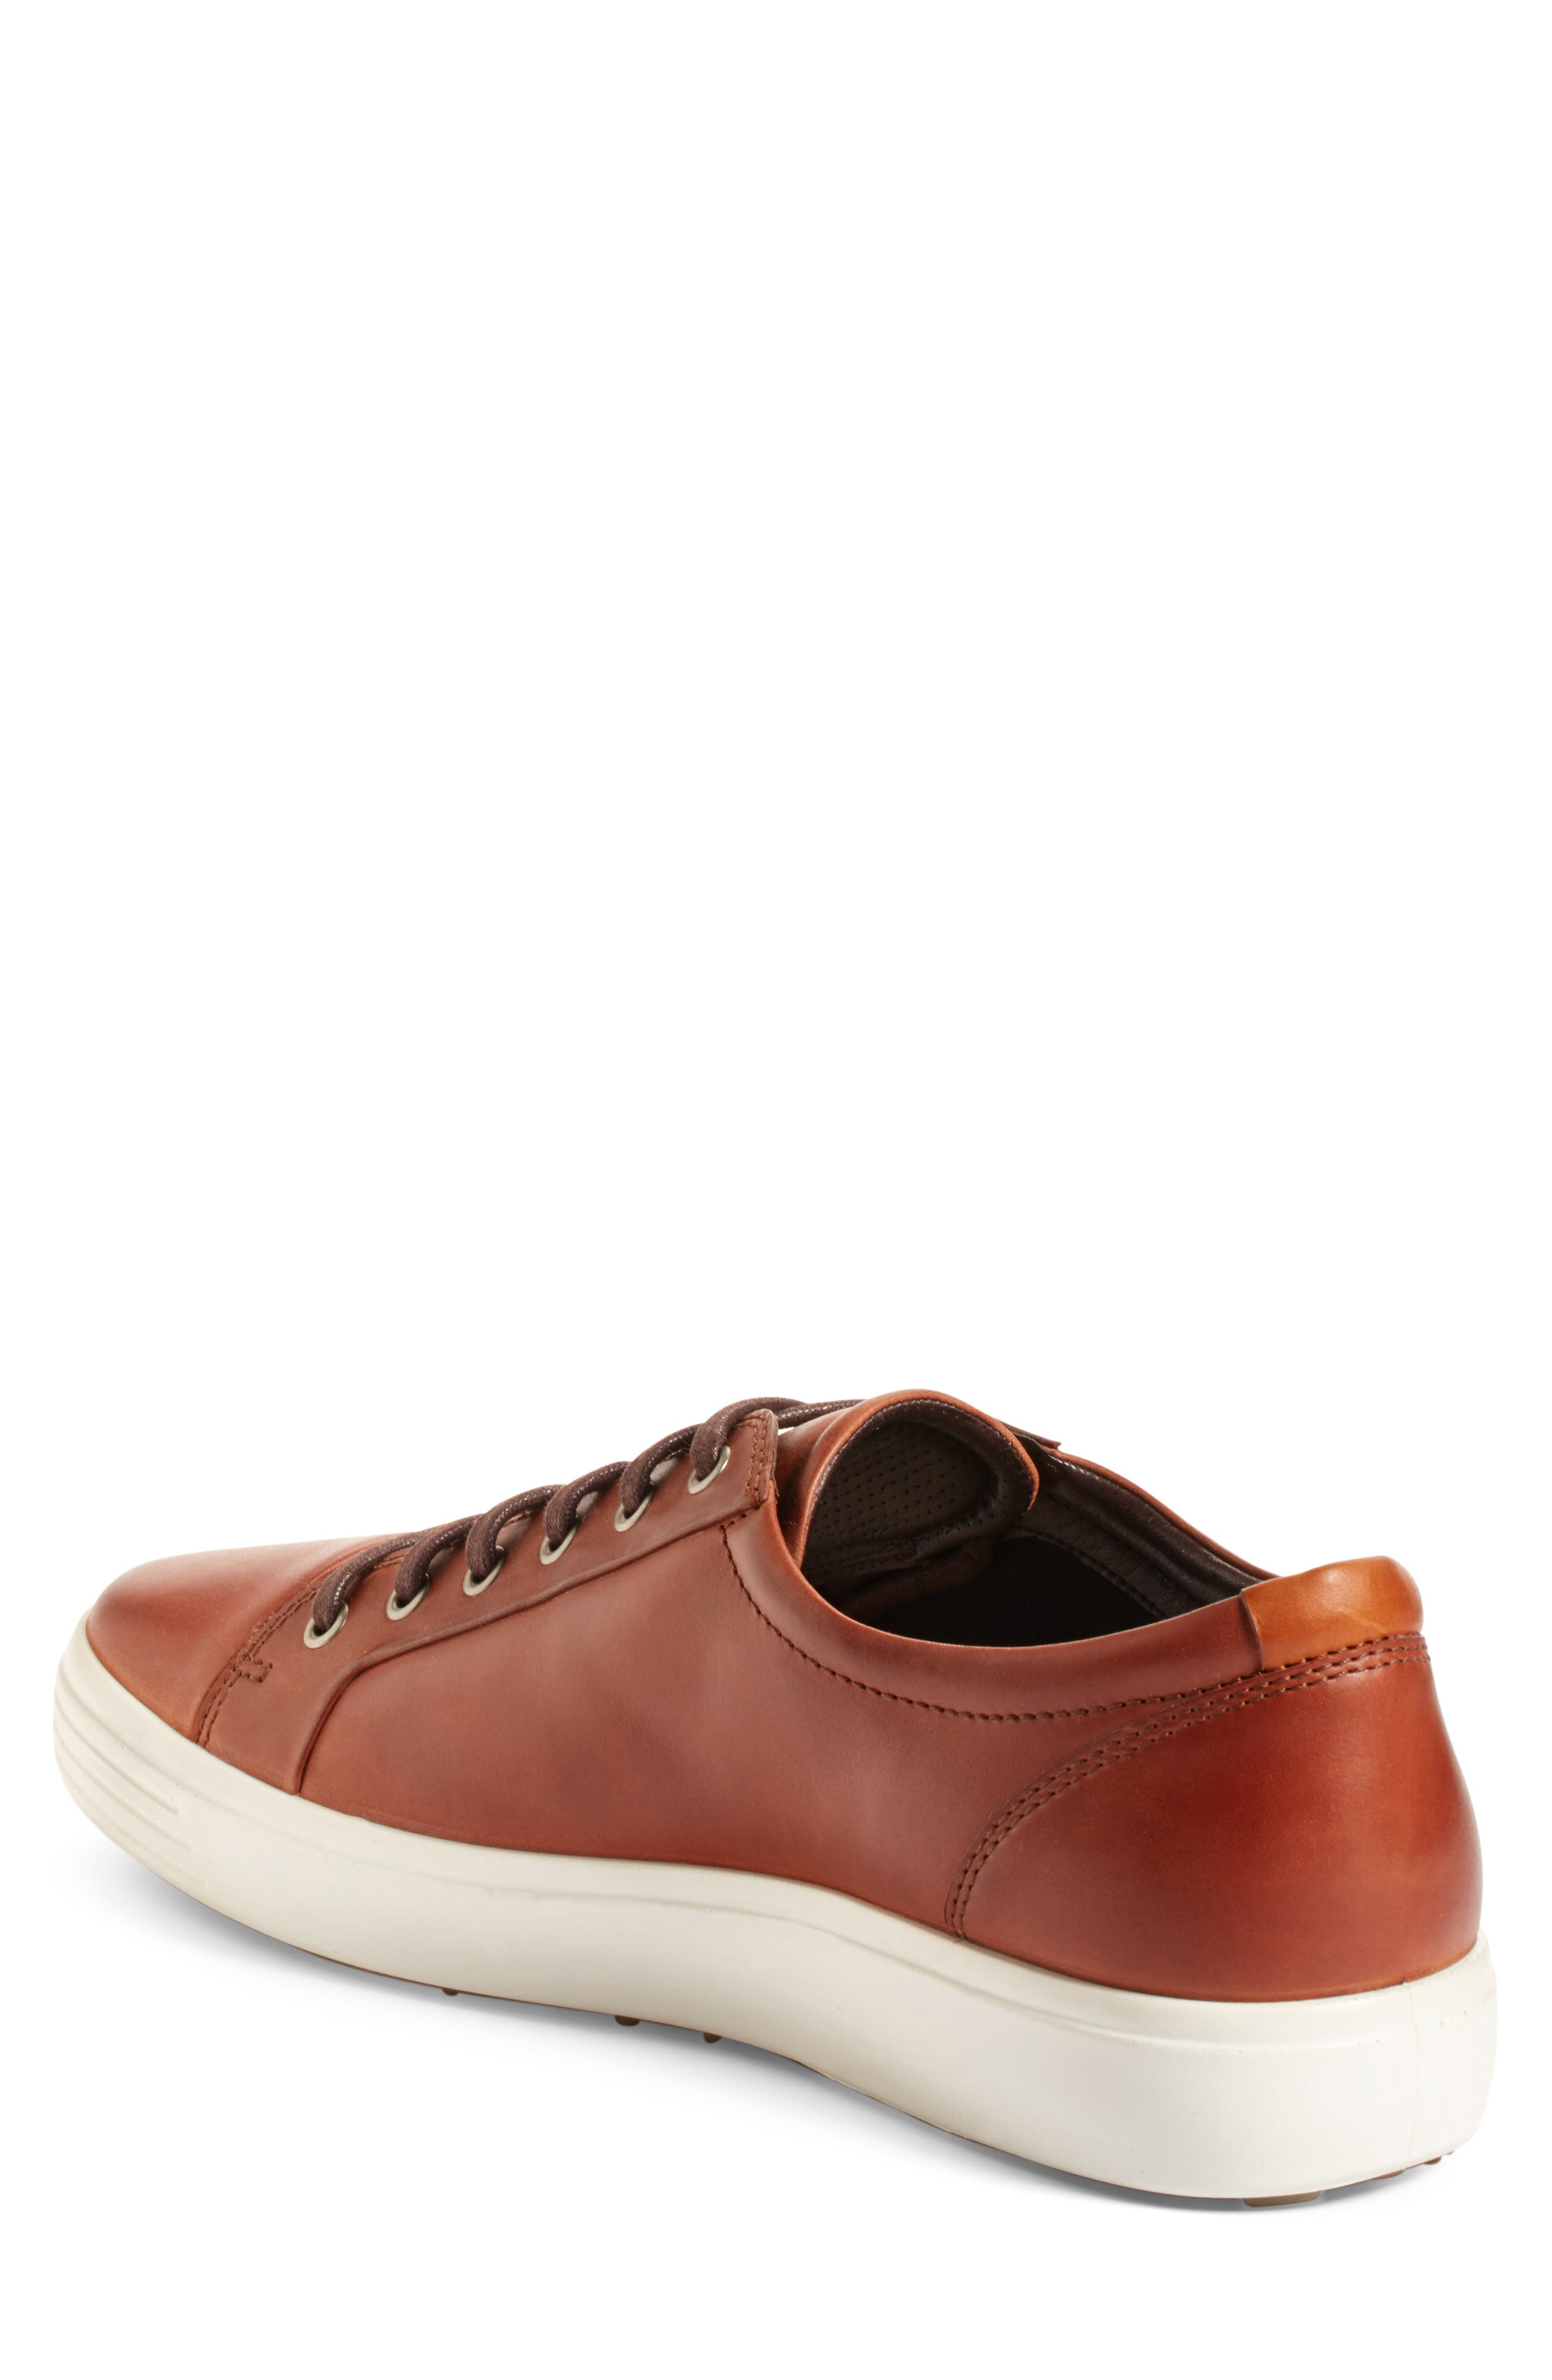 Alternate Image 2  - ECCO Soft VII Lace-Up Sneaker (Men)